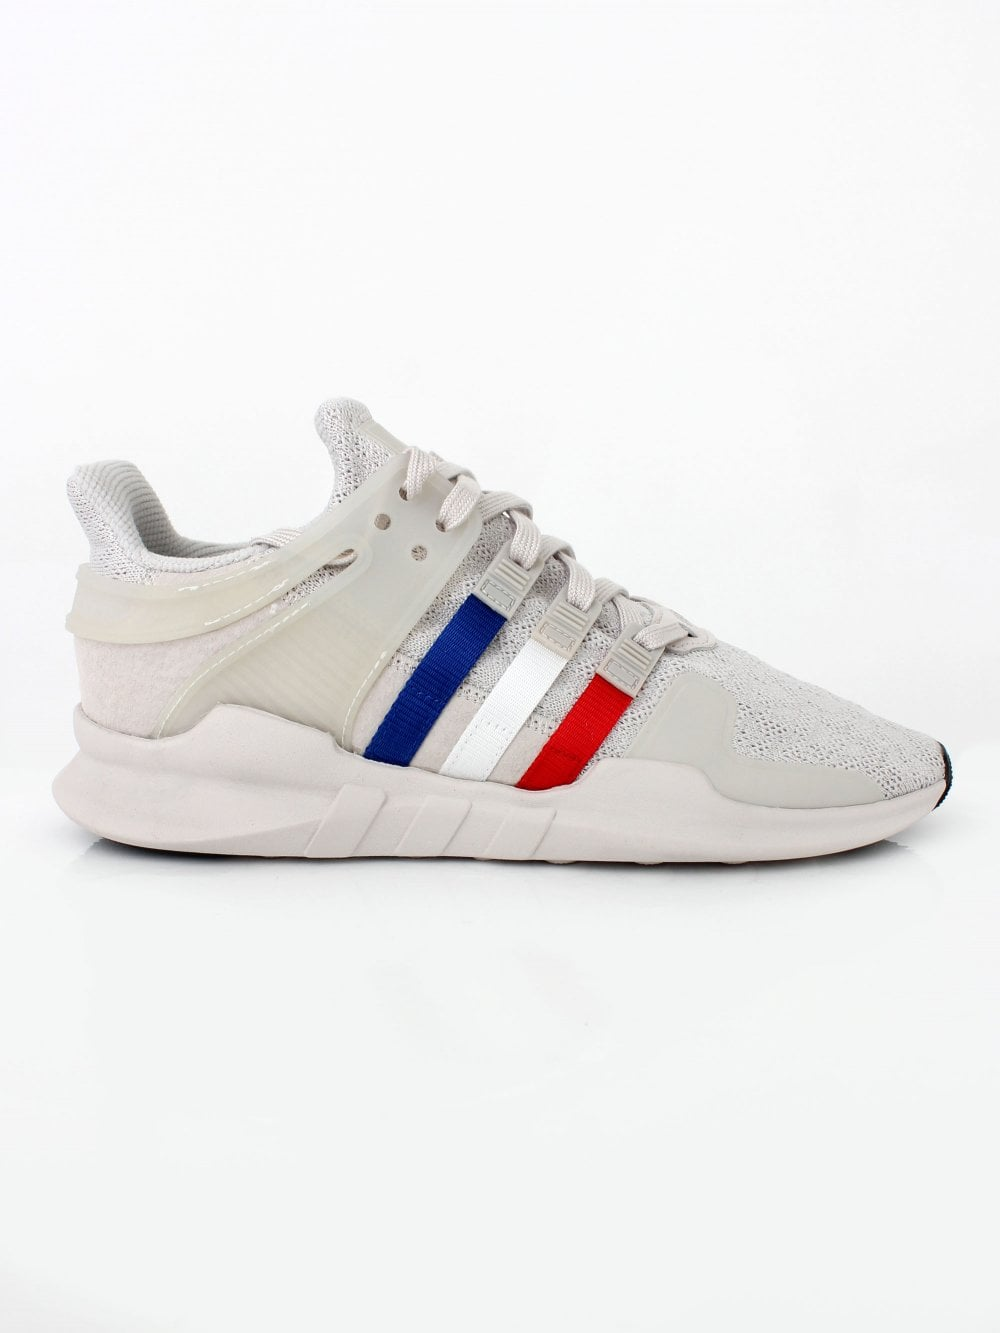 low priced 82d8f e2dae EQT Support Advantage - White/Red/Navy